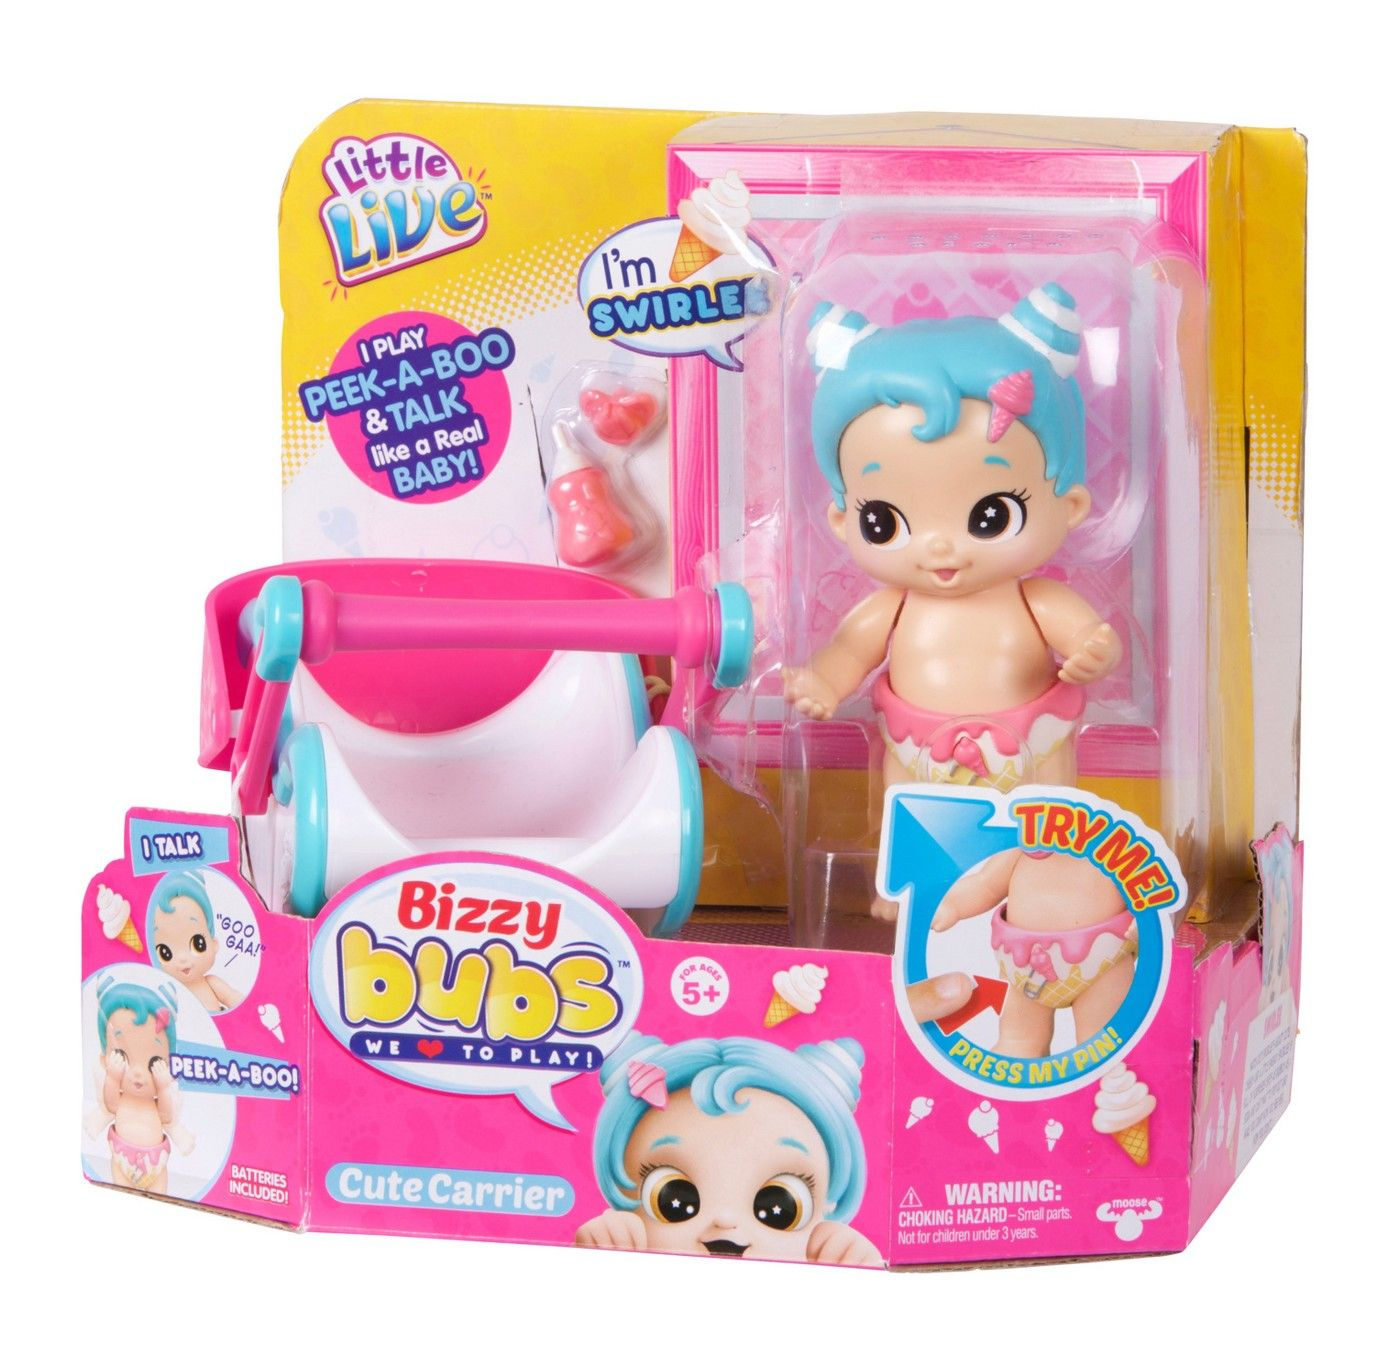 Little Live Bizzy Bubs Peek-A-Boo Baby Swirlee and Carrier Interactive Baby